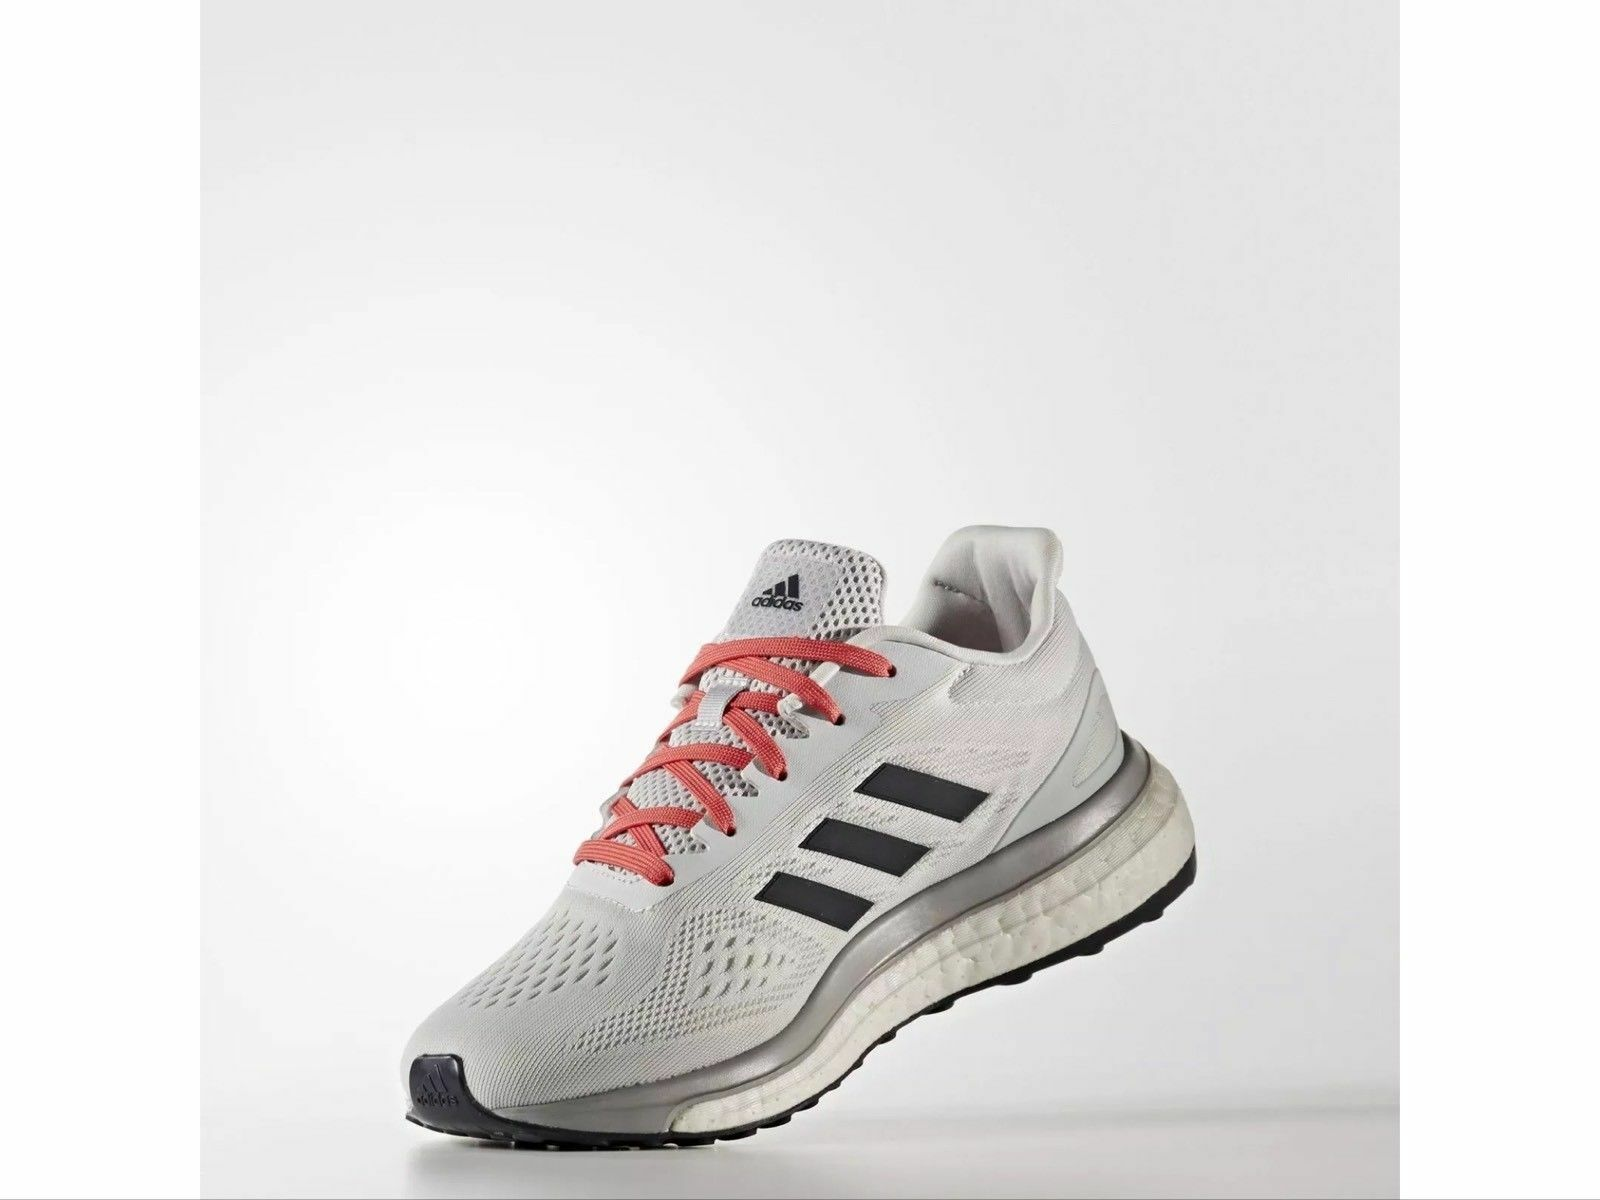 New Women's Adidas Response Boost Limited Running Shoes Grey Sonic Drive